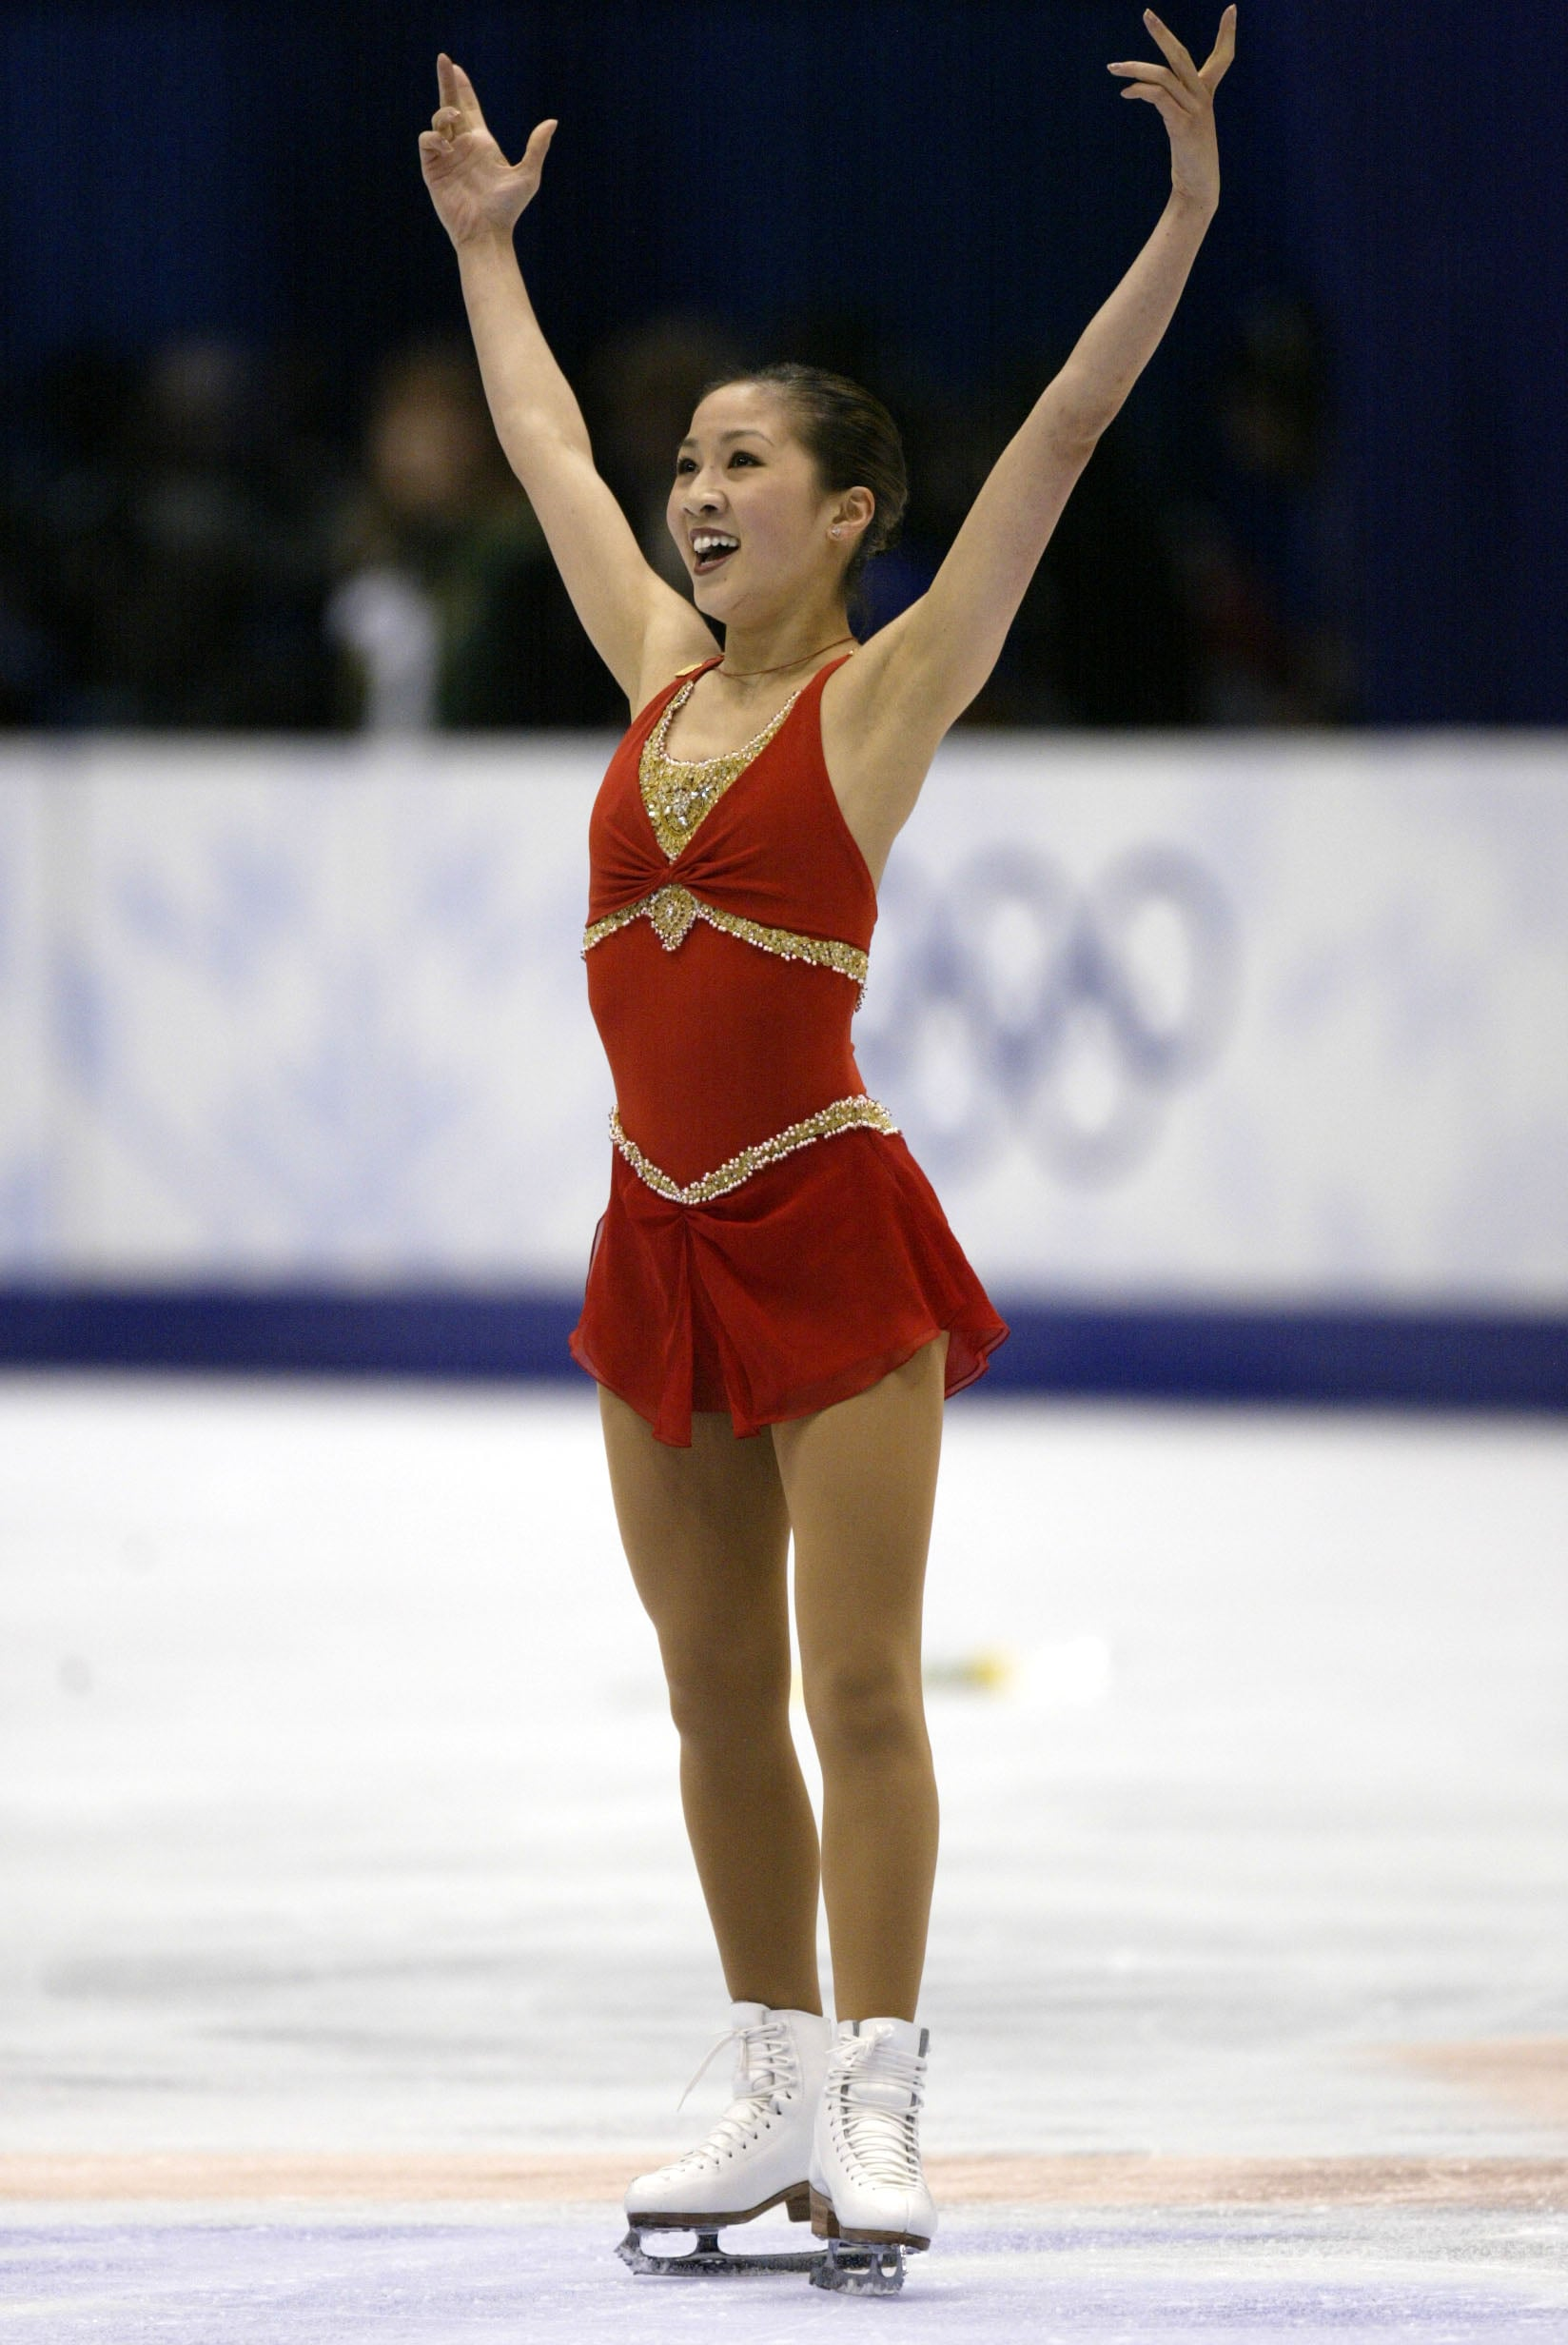 Michelle Kwan Ice Skating